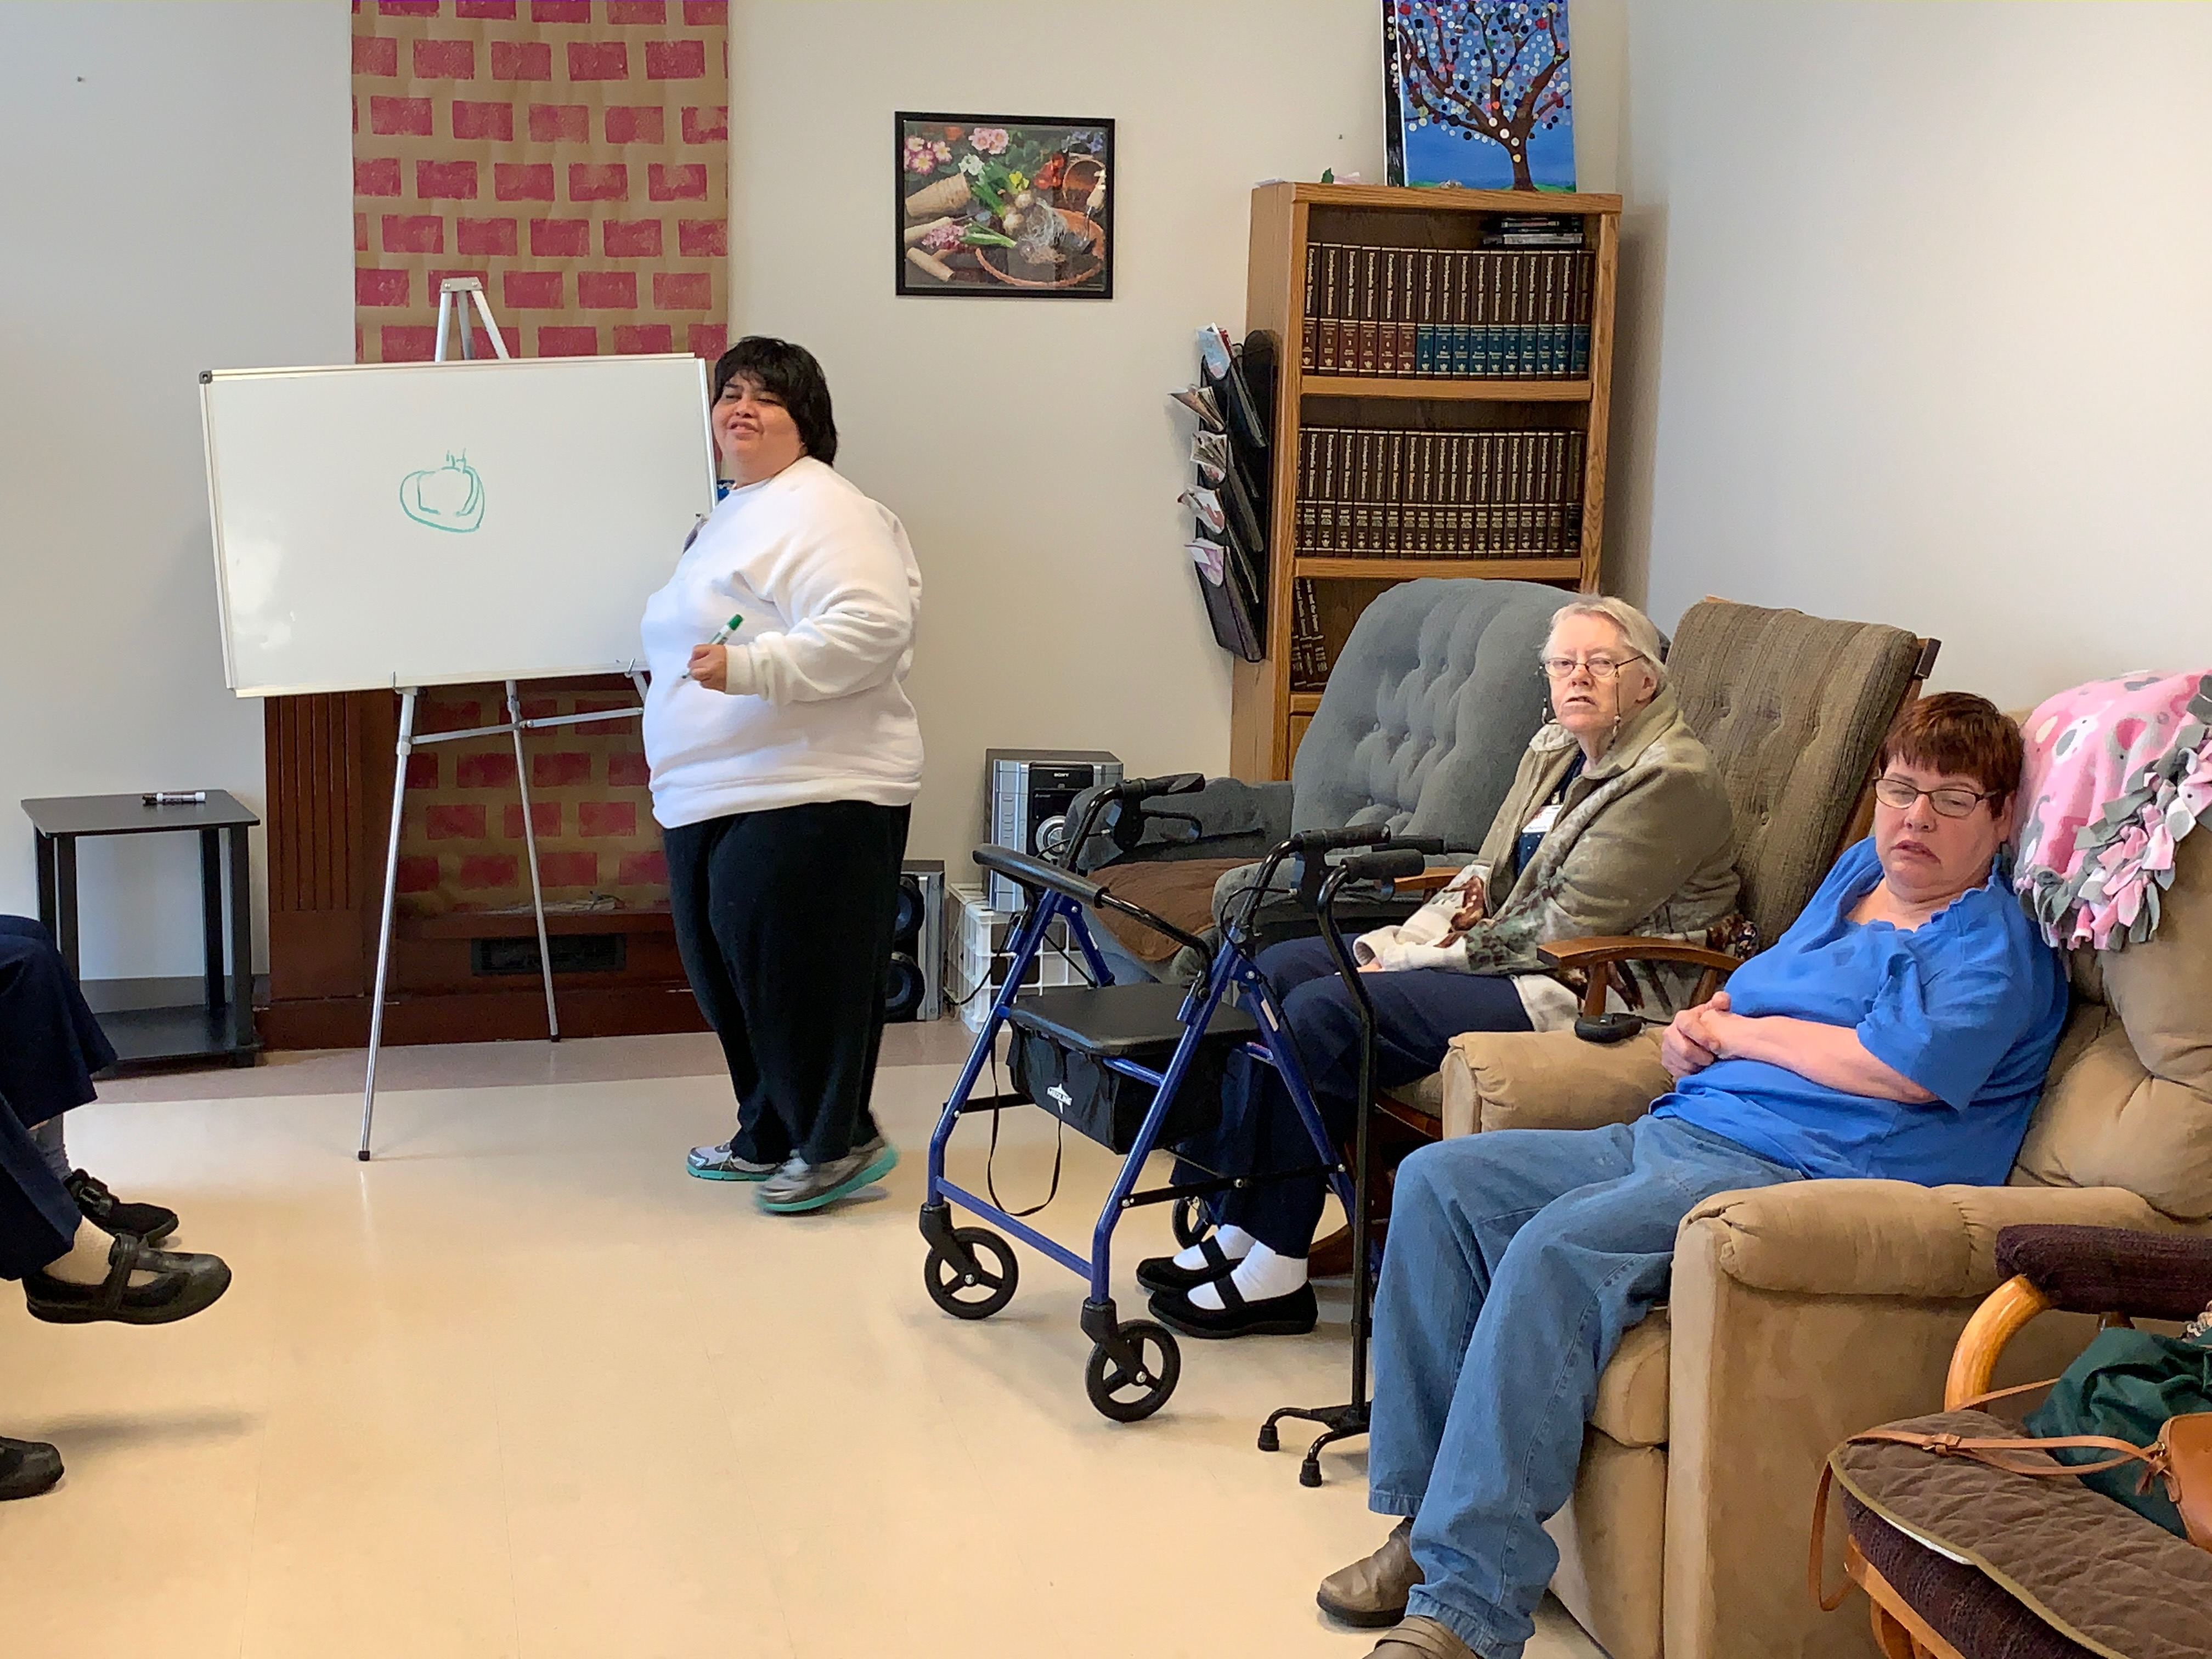 Autumn House Adult Day Service